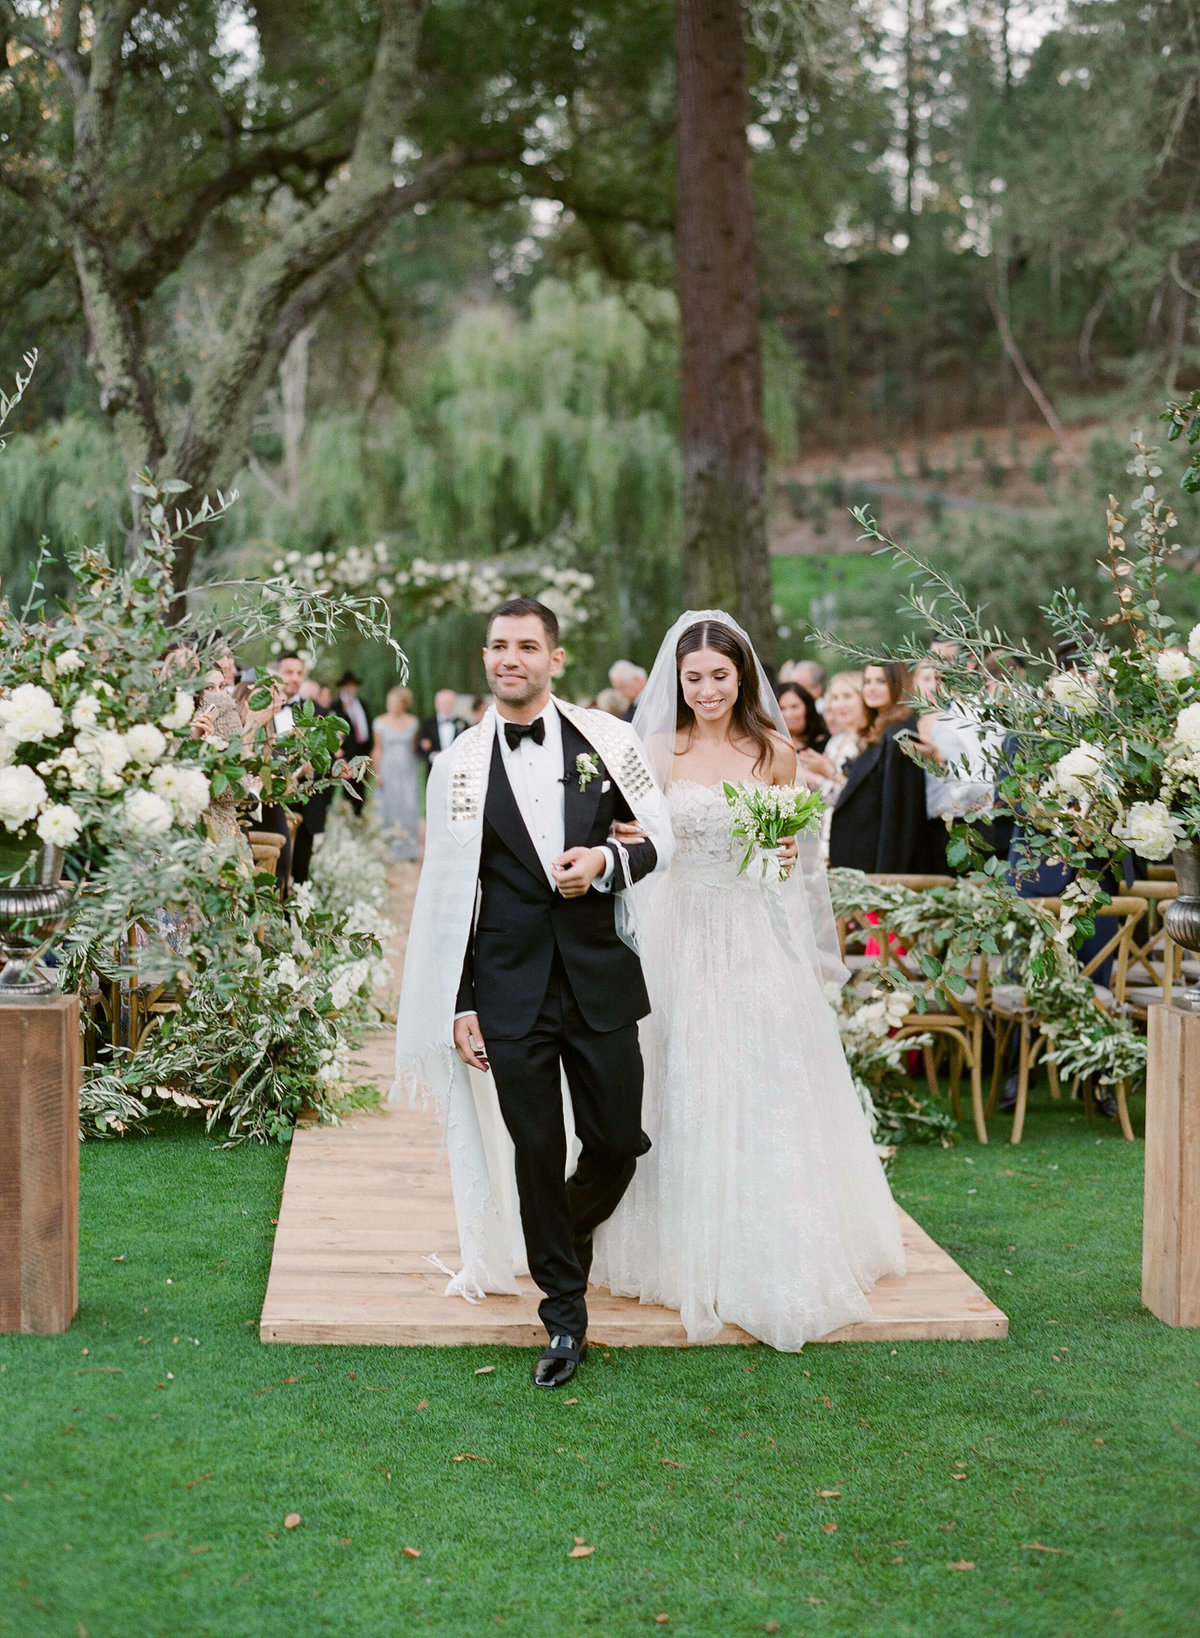 76-KTMerry-weddings-ceremony-recessional-Meadowood-Napa-Valley